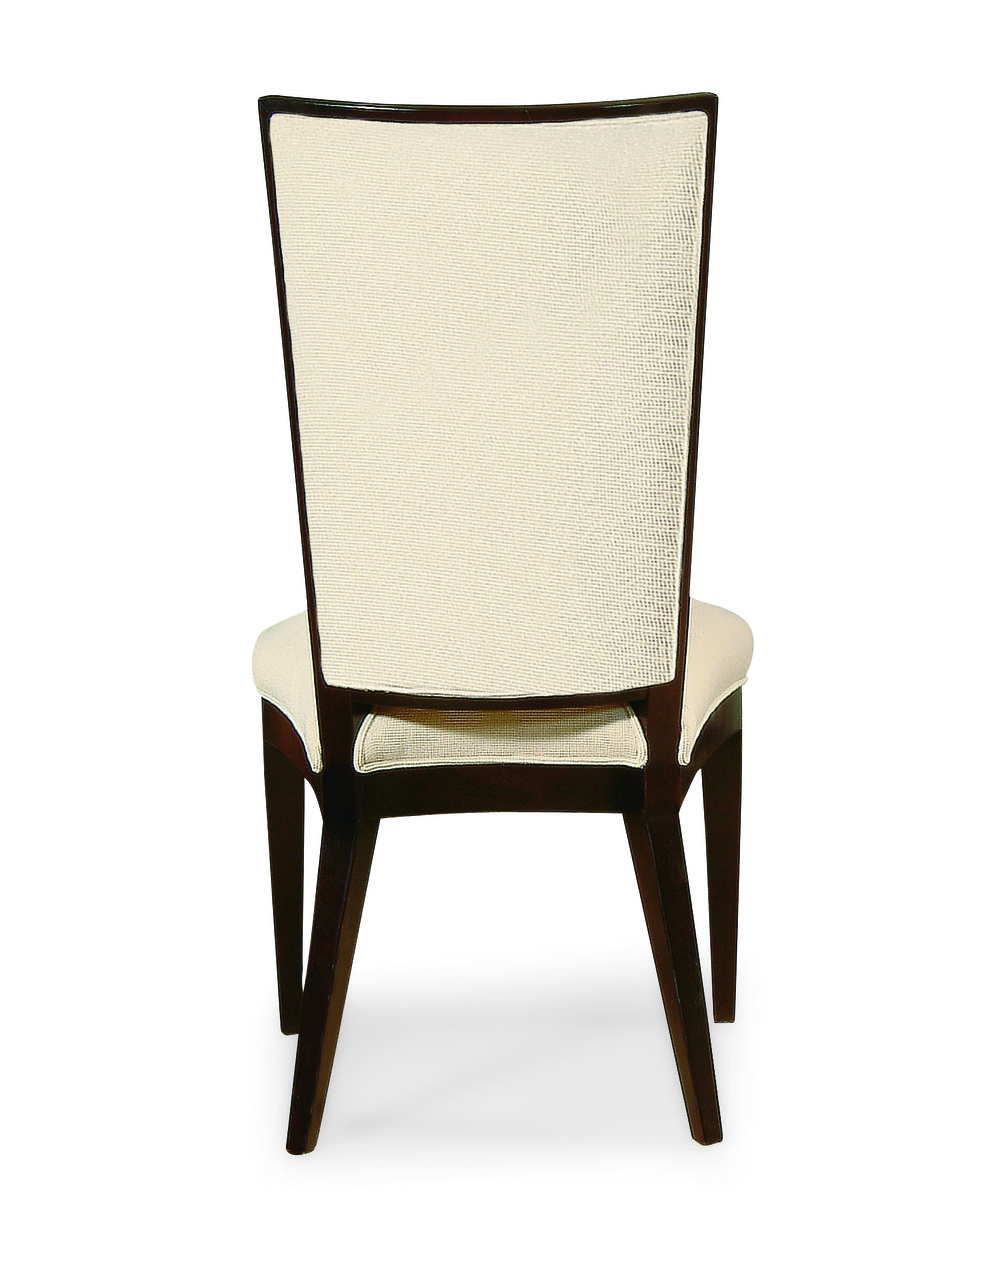 CENTURY FURNITURE - Edison Upholstered Side Chair